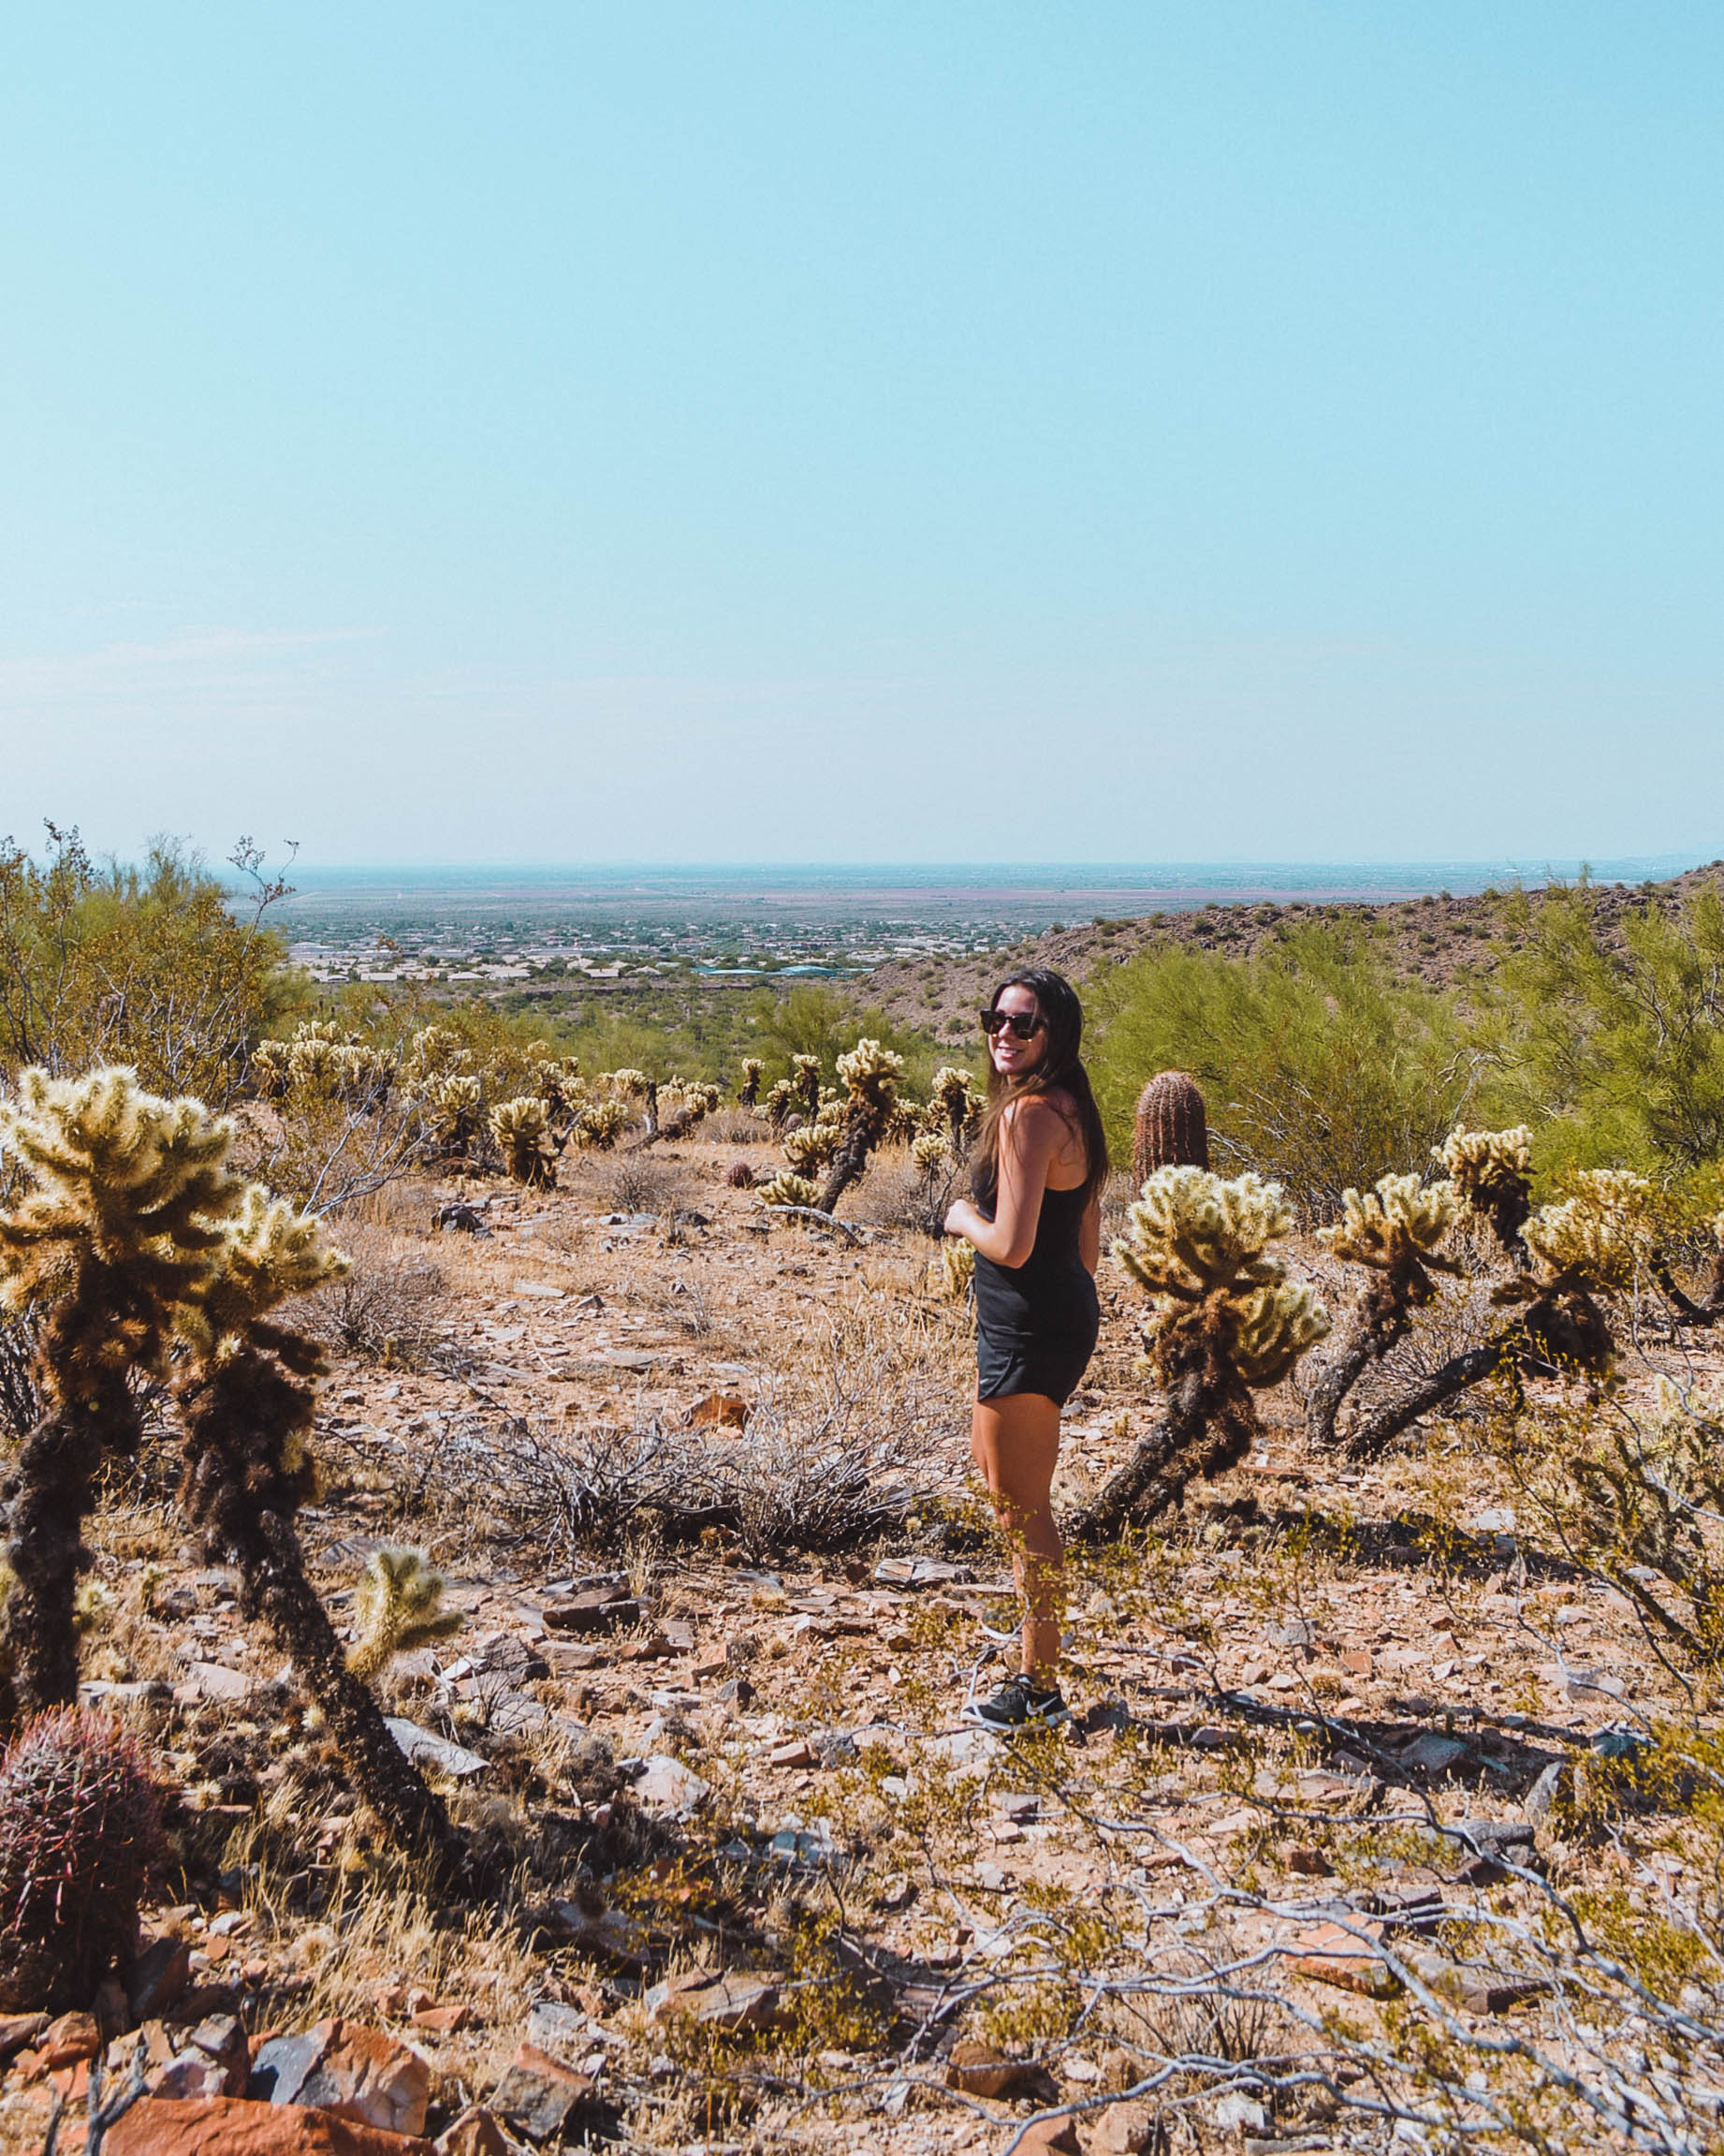 Arizona hiking Travel | 2017 Travel Year in Review + Travel and Blog Goals for 2018 | goseekexplore.com